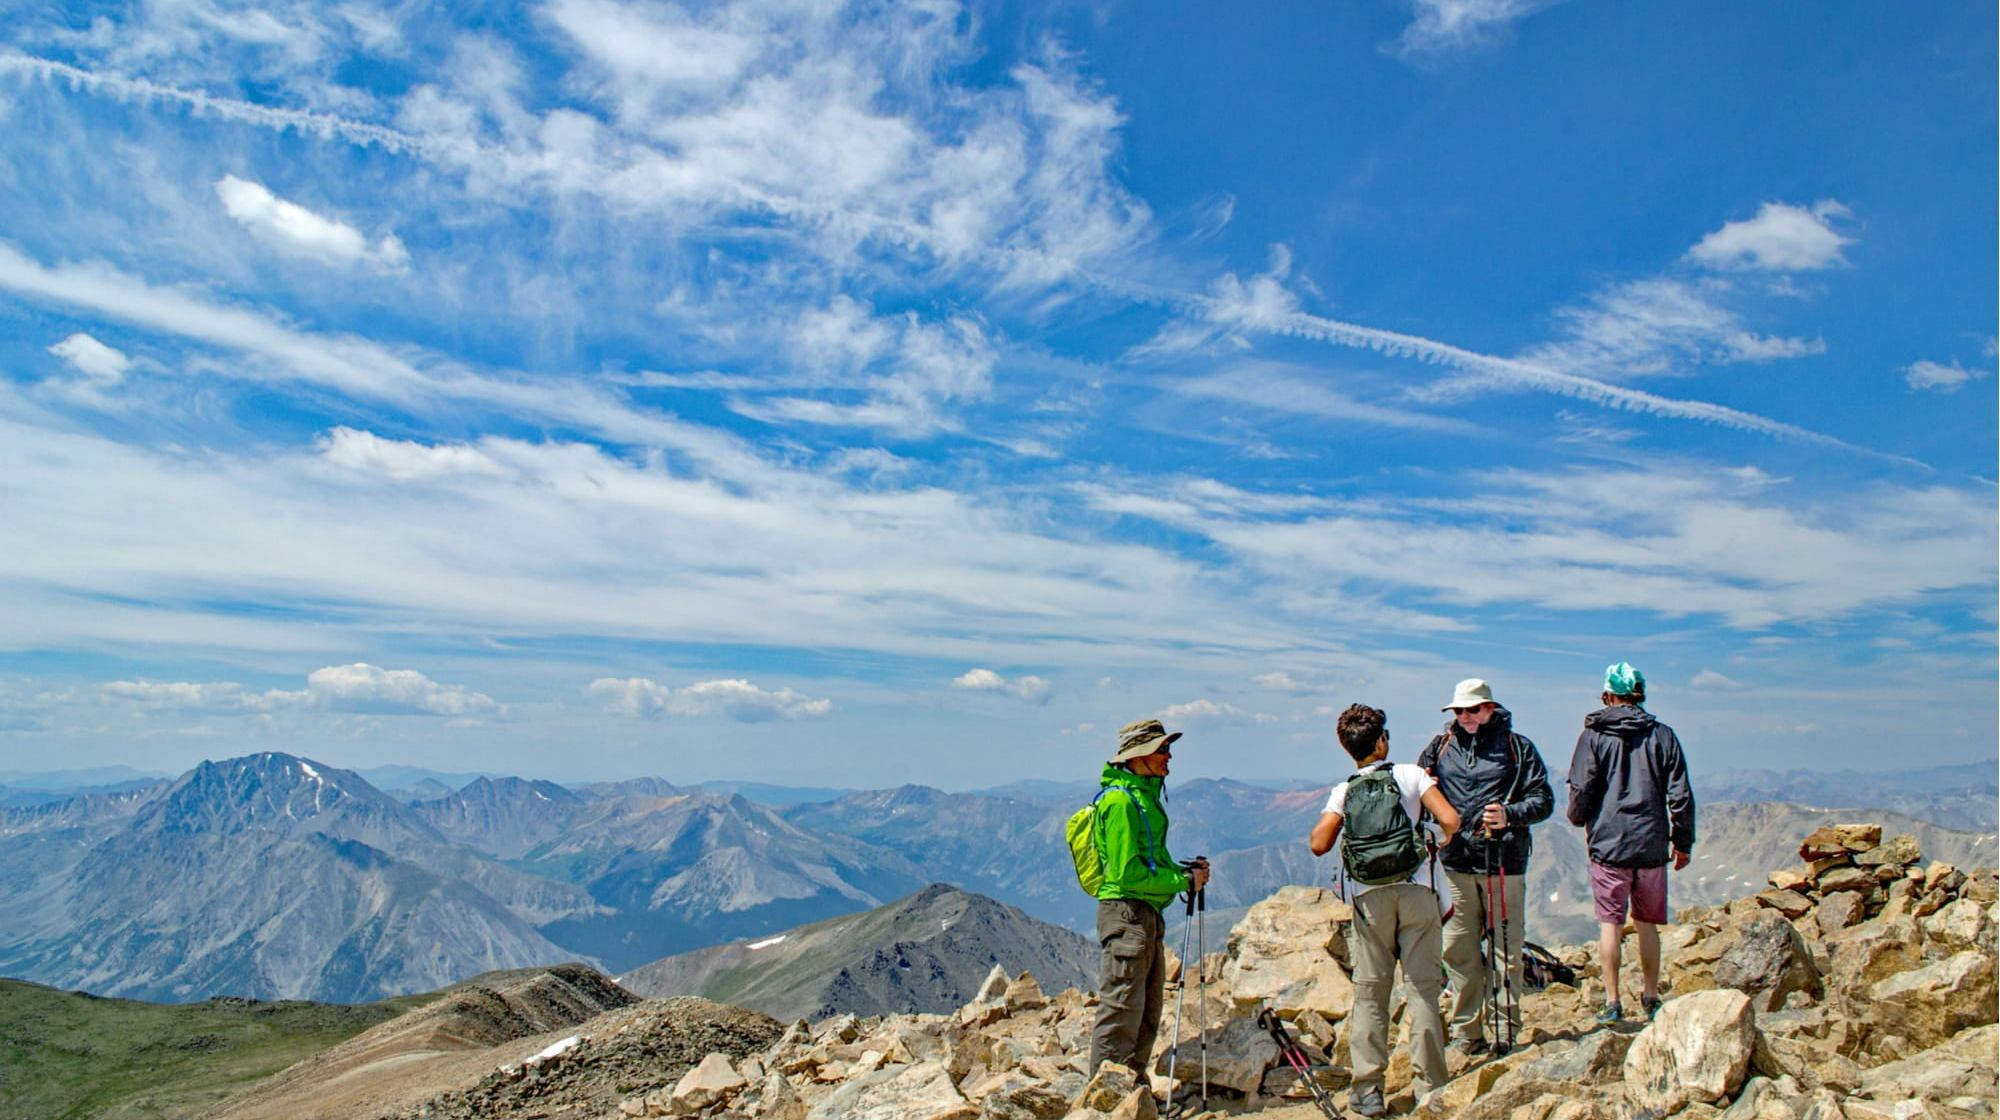 Colorado 14ers: A Guide to Hiking Colorado's Tallest Mountains